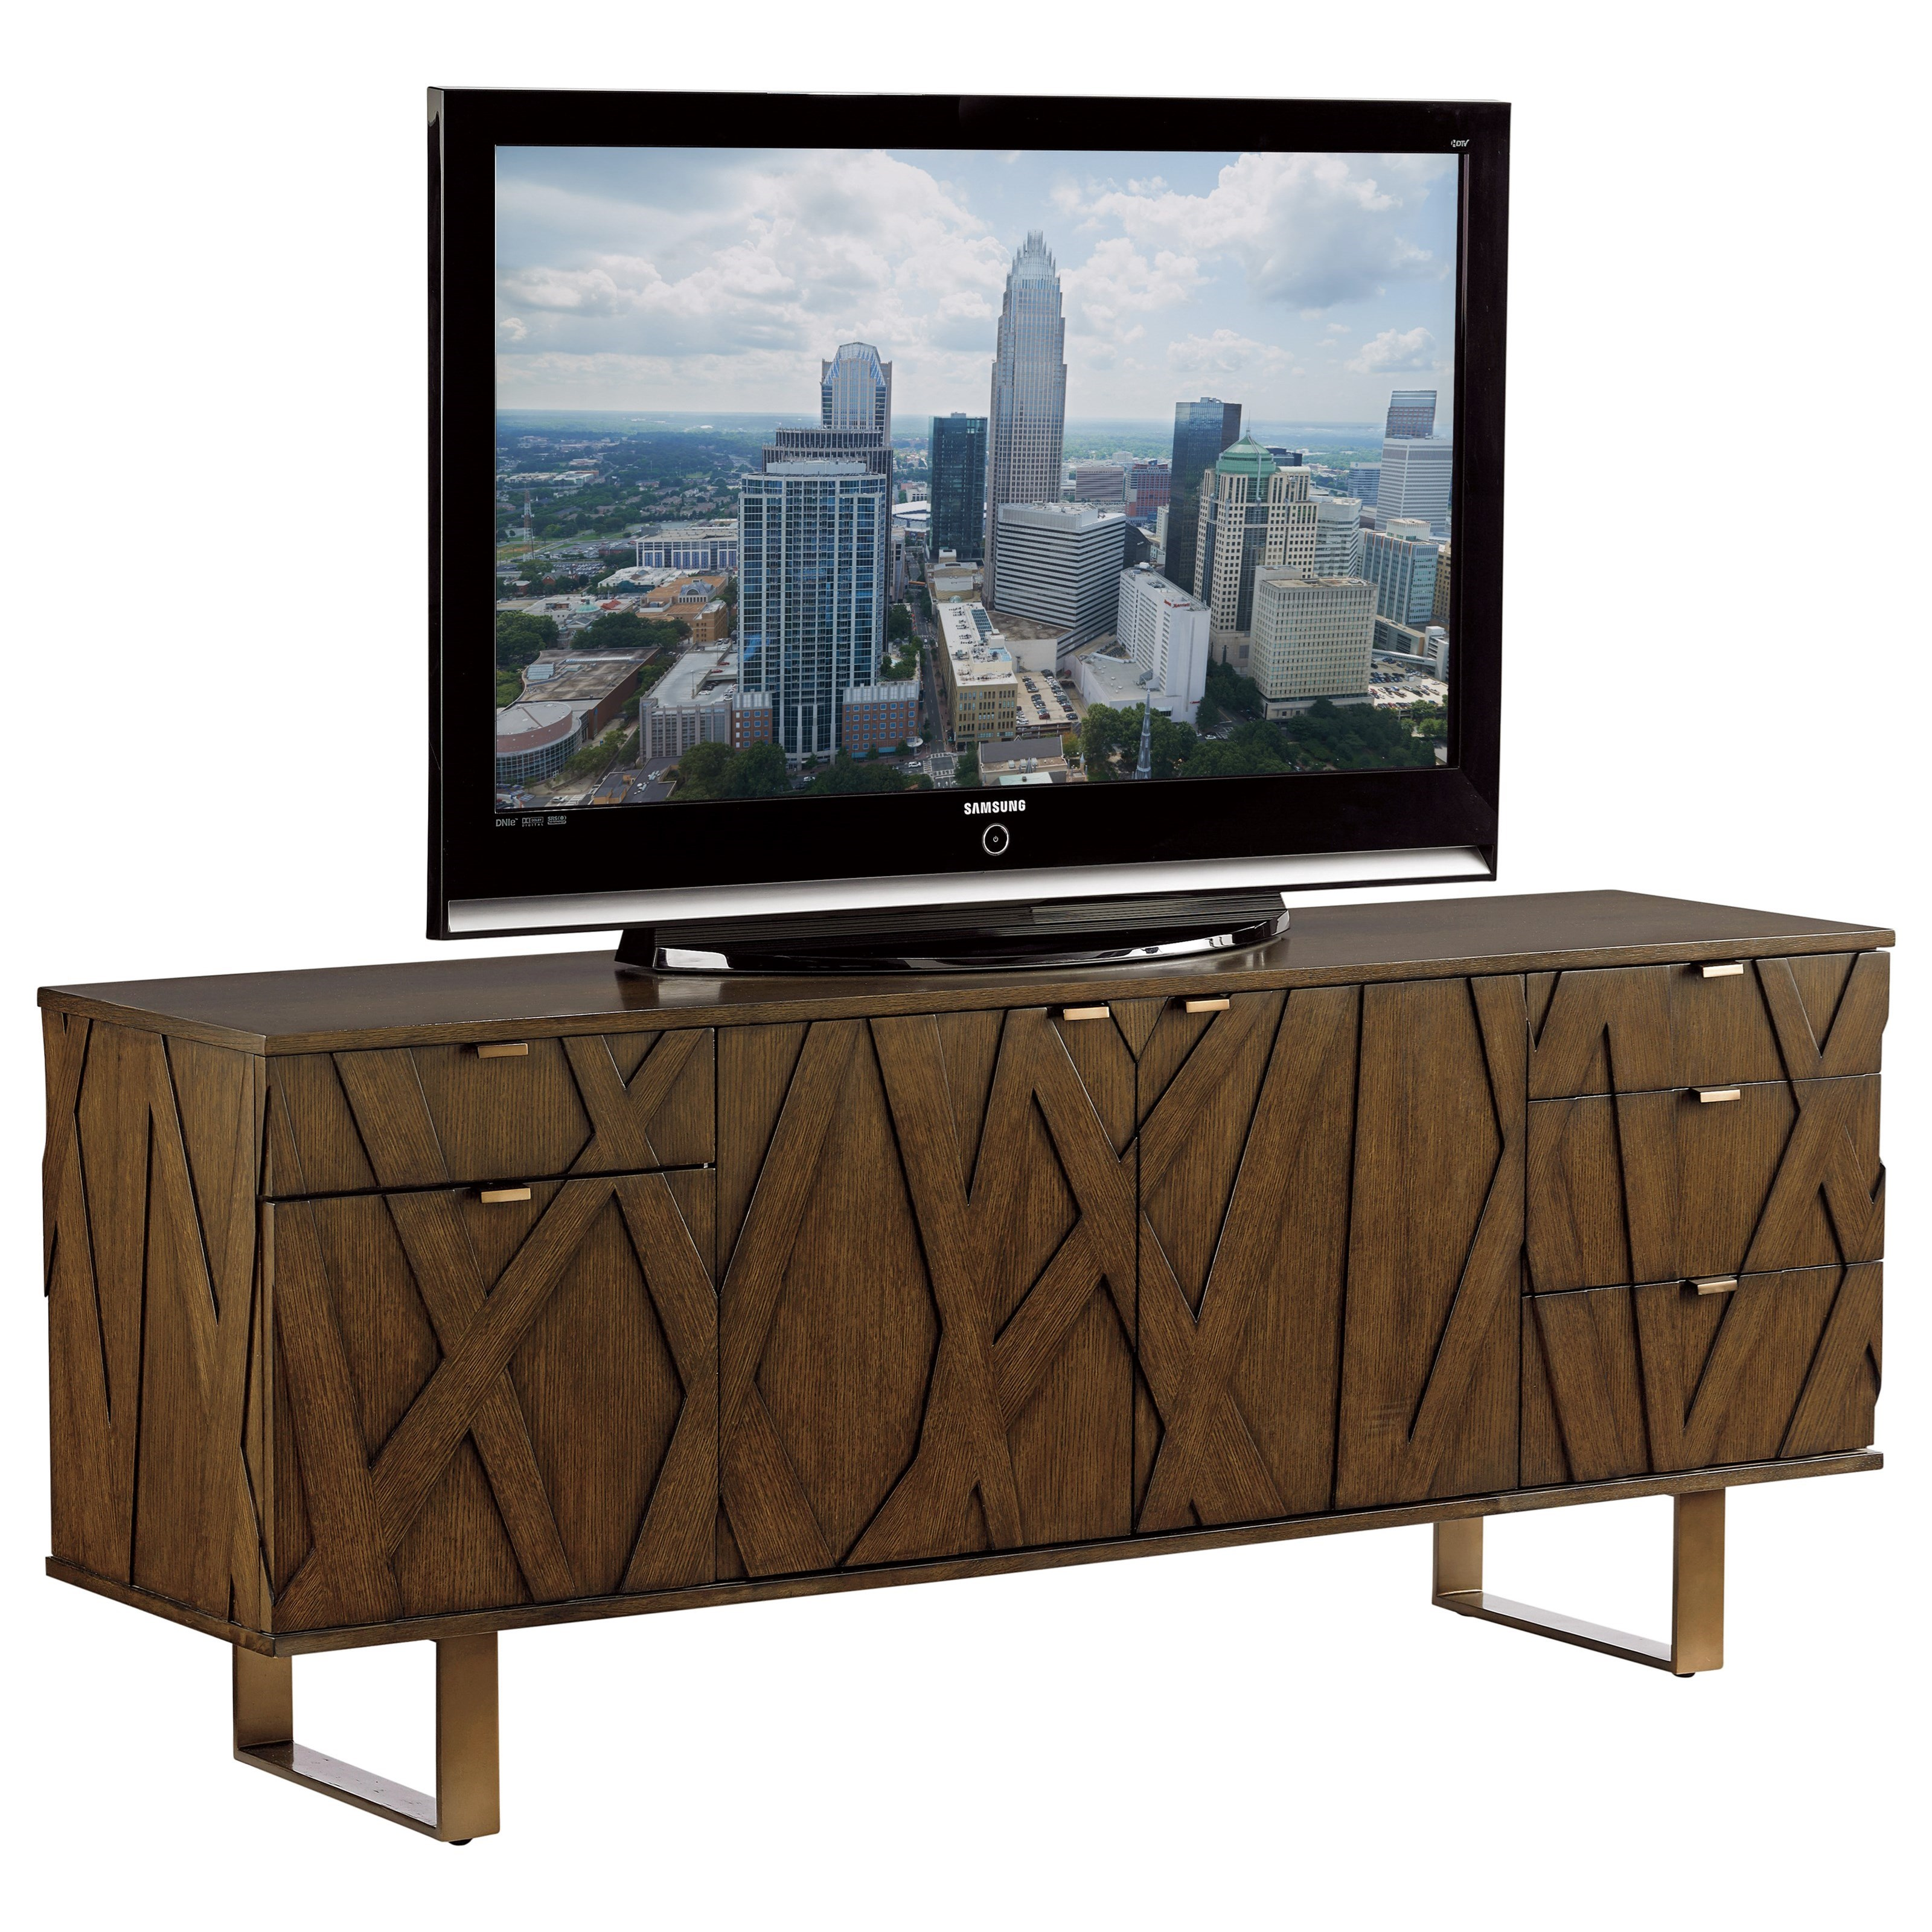 impact of television in the modern Television has huge impact on society television has both advantages and disadvantages it is an audio-visual electronic device of the modern age it has filled life with a new charm that can never be dismissed summarily as harmful.